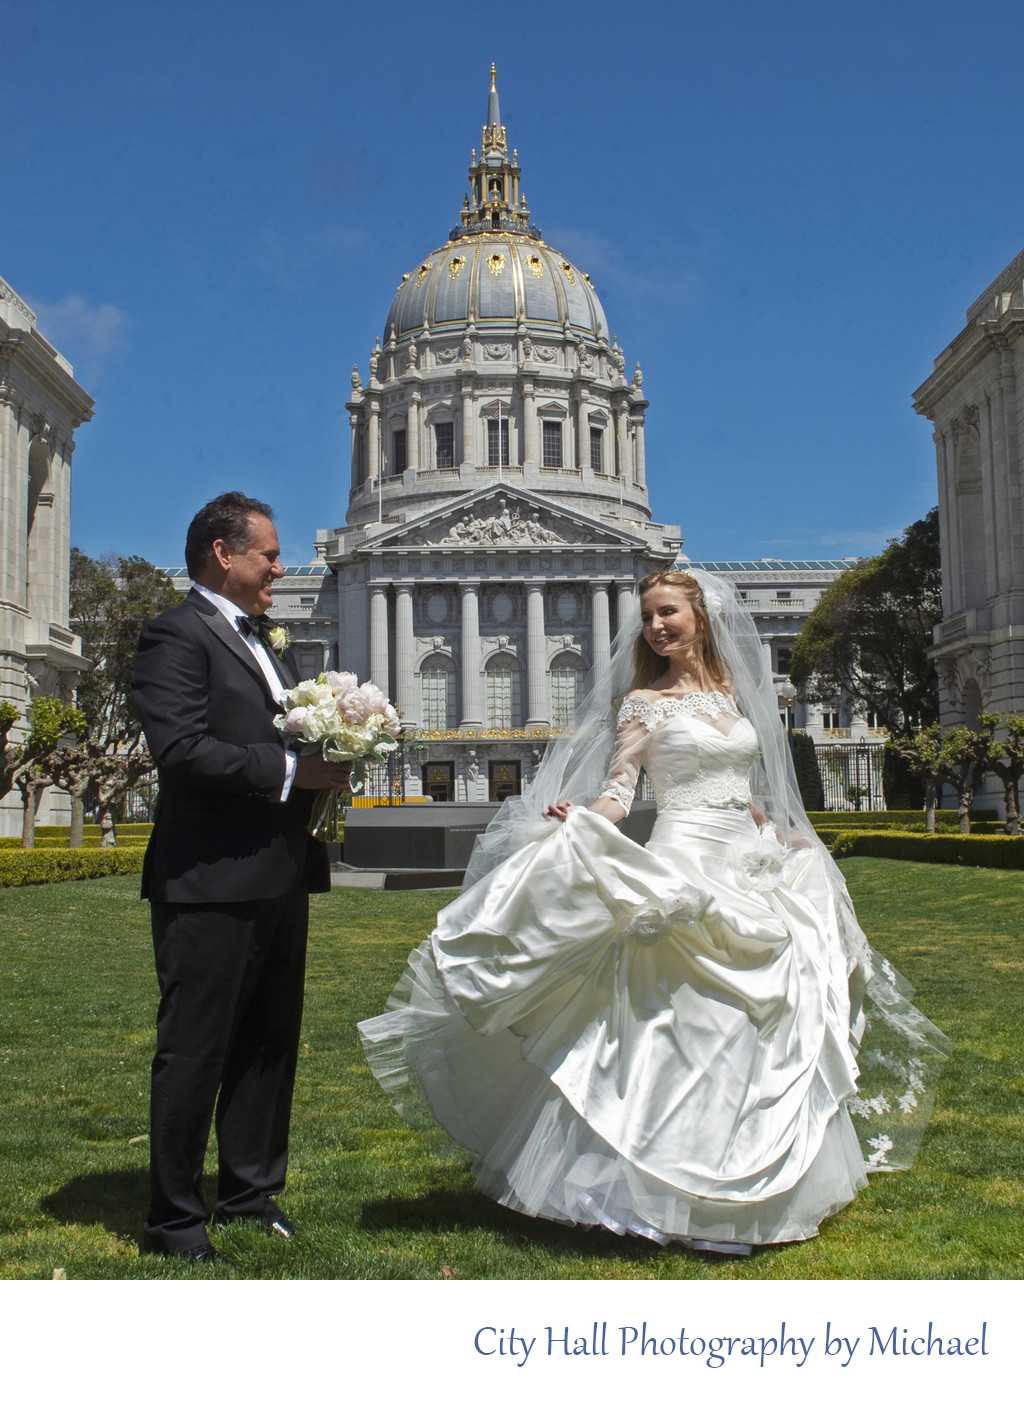 San Francisco City Hall Wedding Photographer - Exterior Image